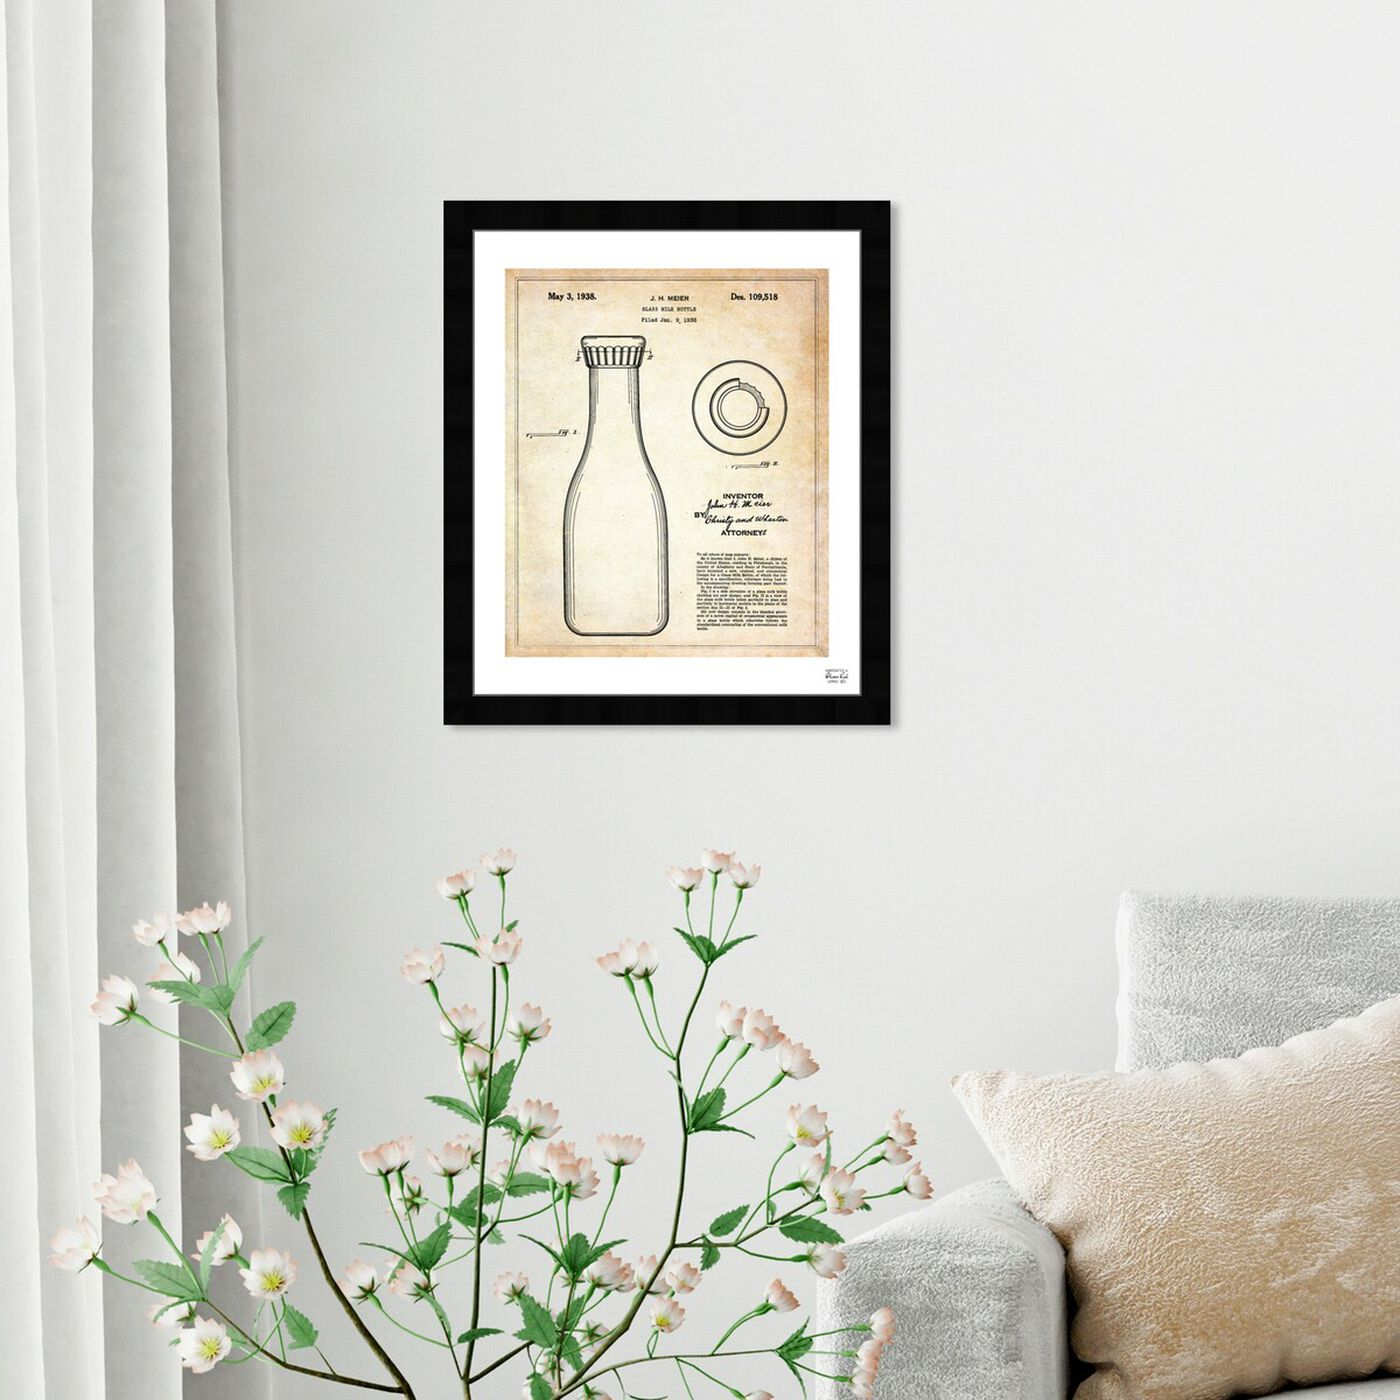 Hanging view of Milk Bottle 1938 featuring food and cuisine and baking essentials art.